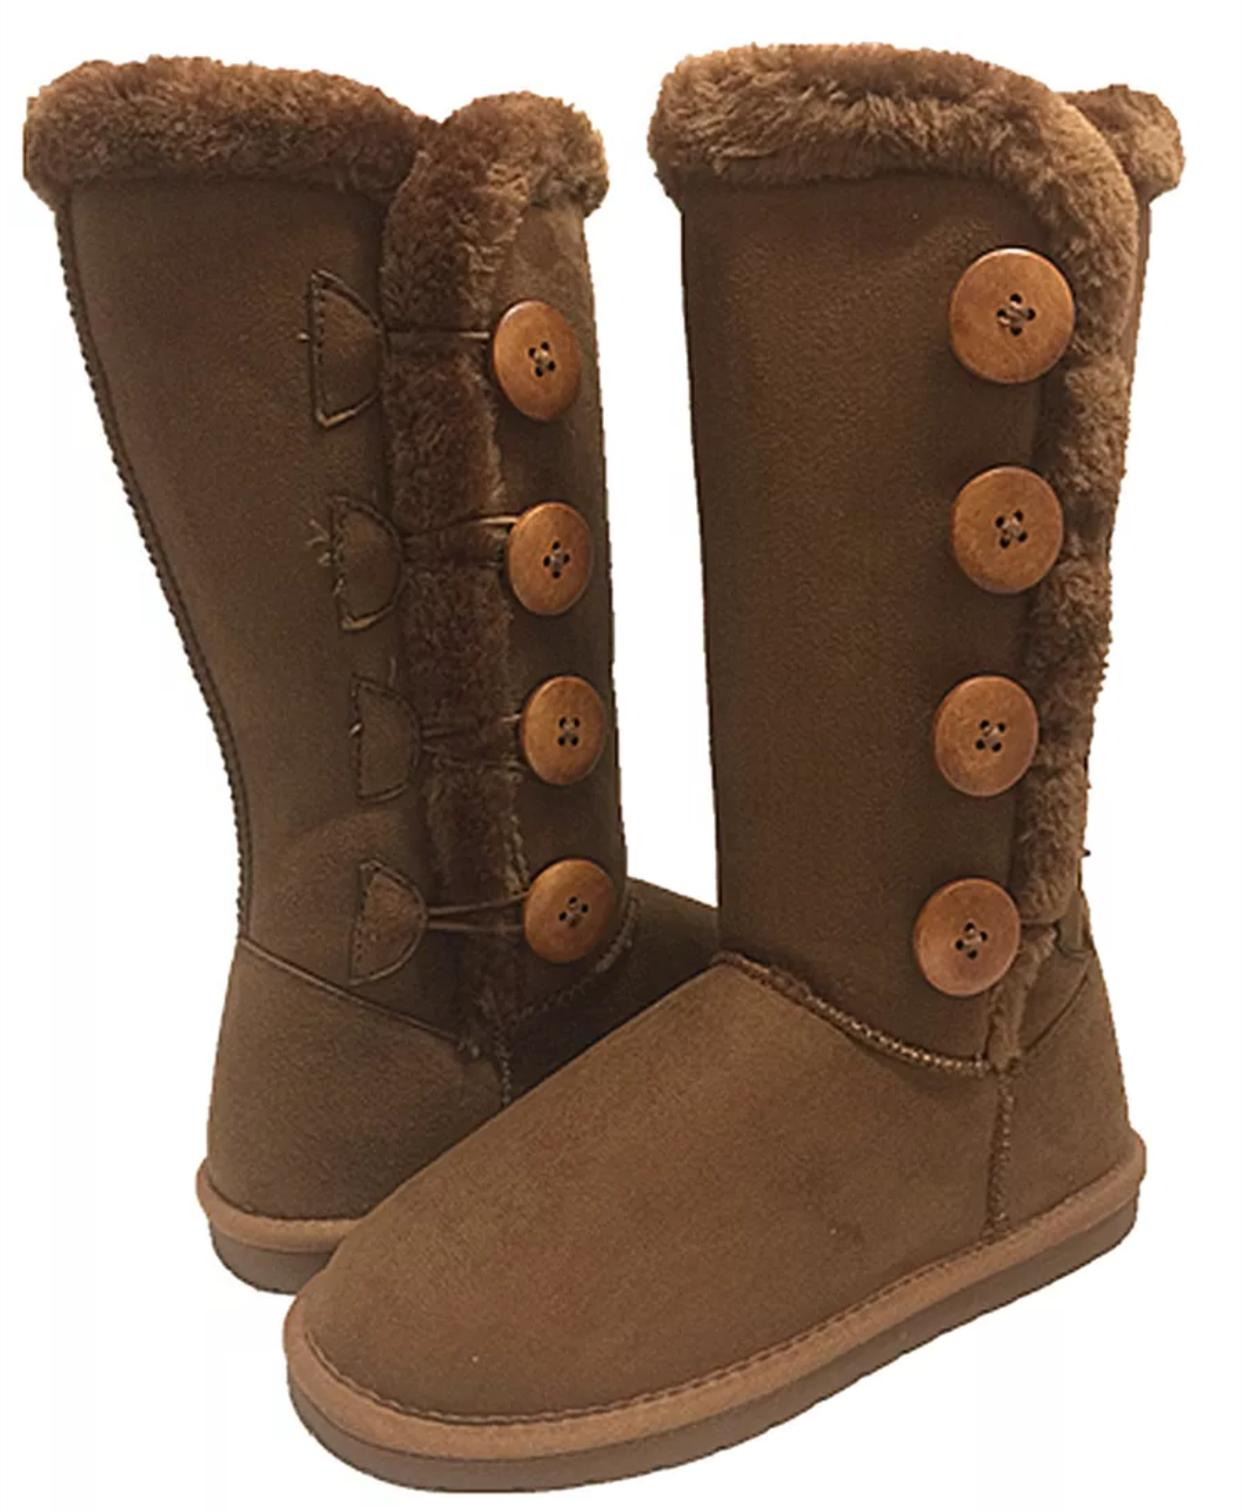 Women's Fur- Lined Mid-calf 4-Buttons Faux Soft Snow Winter